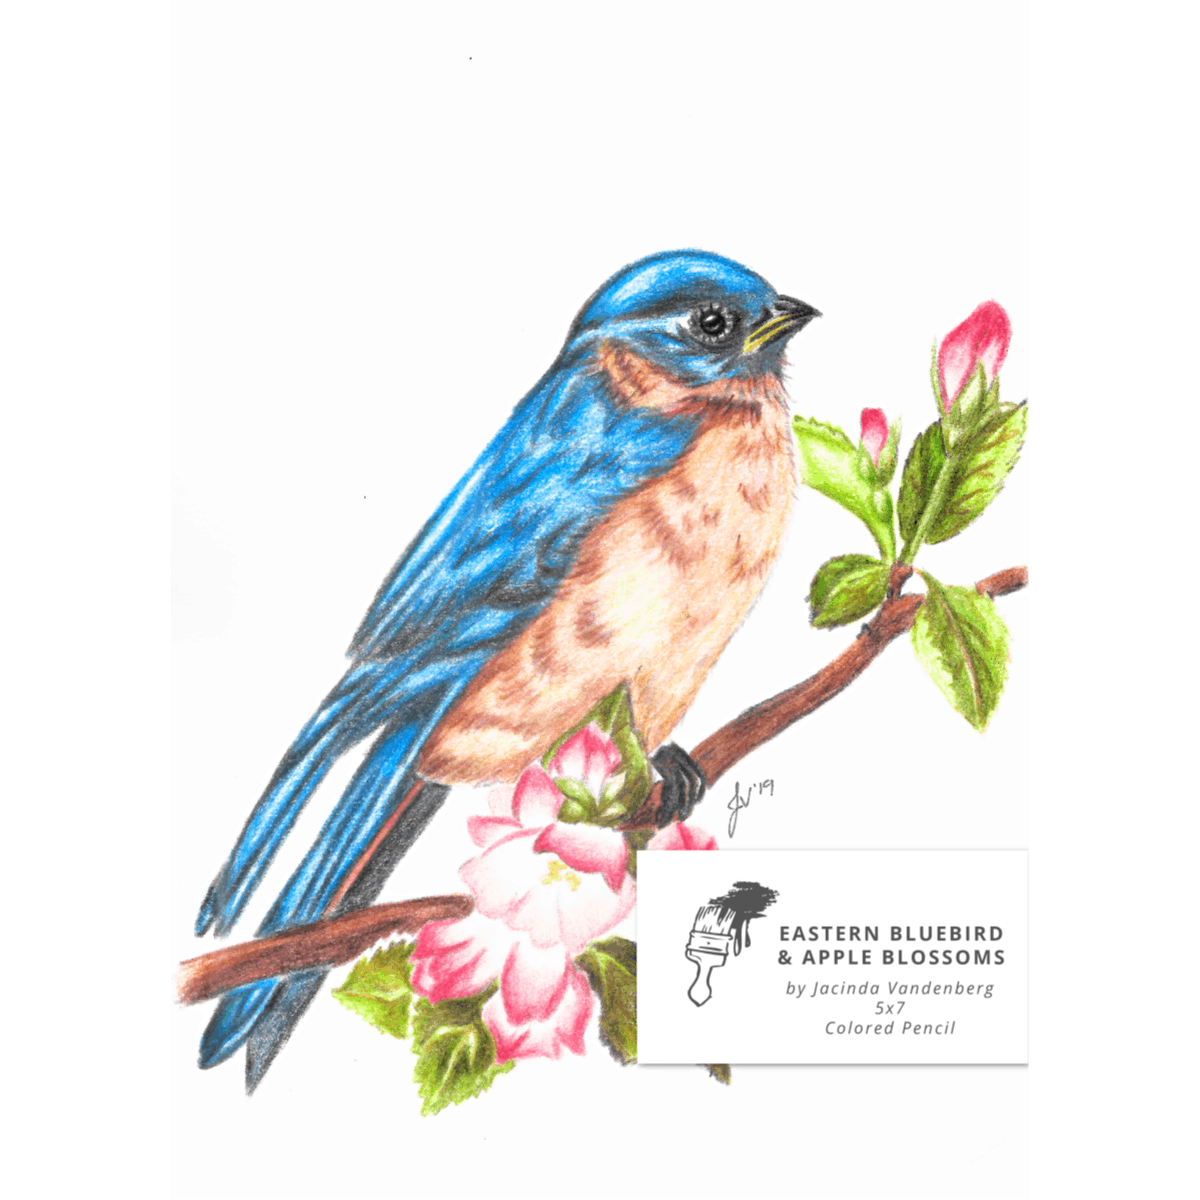 5x7 Eastern Bluebird & Apple Blossoms